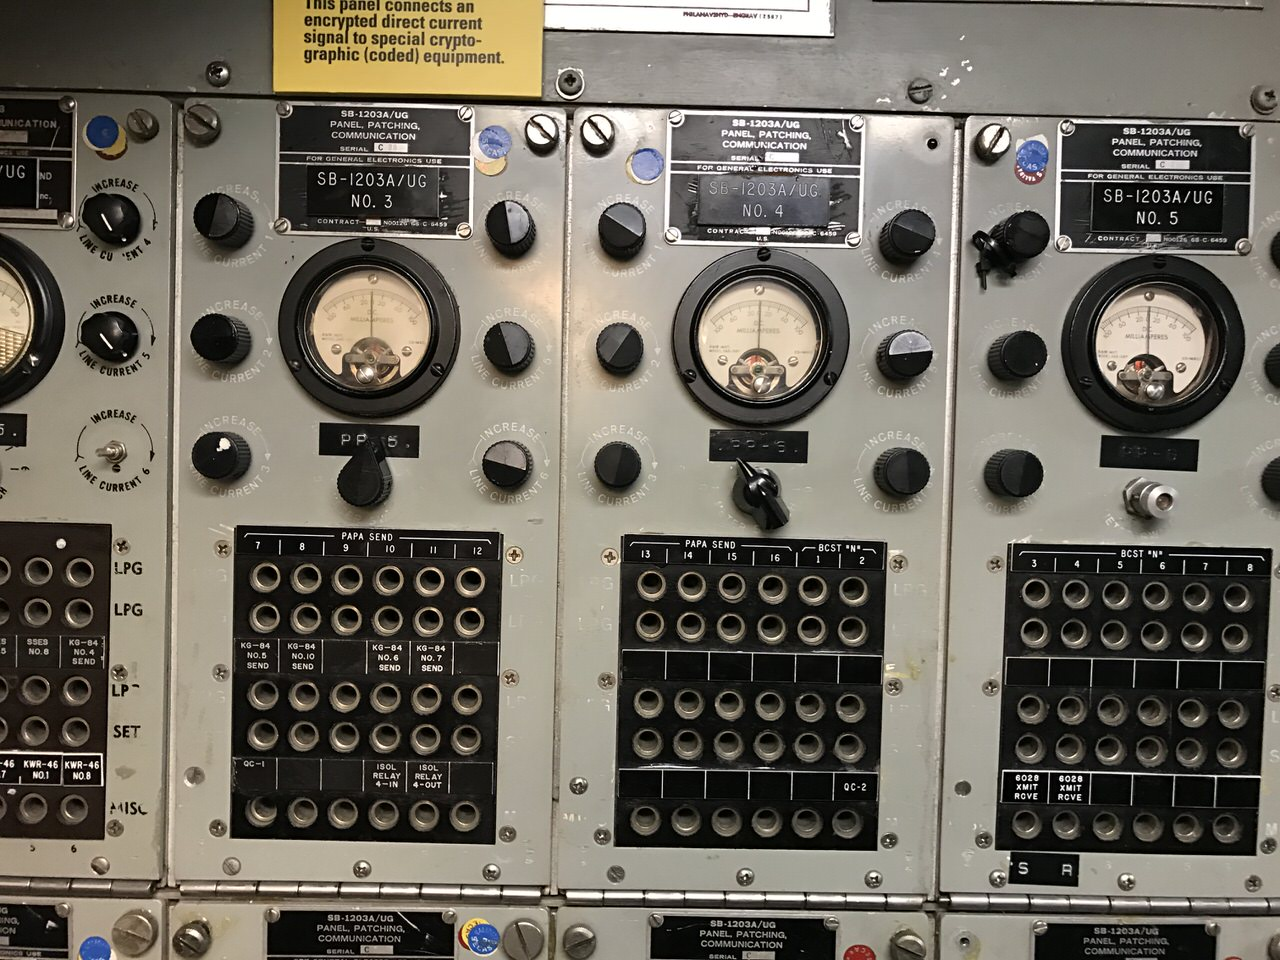 Uss midway museum 0608